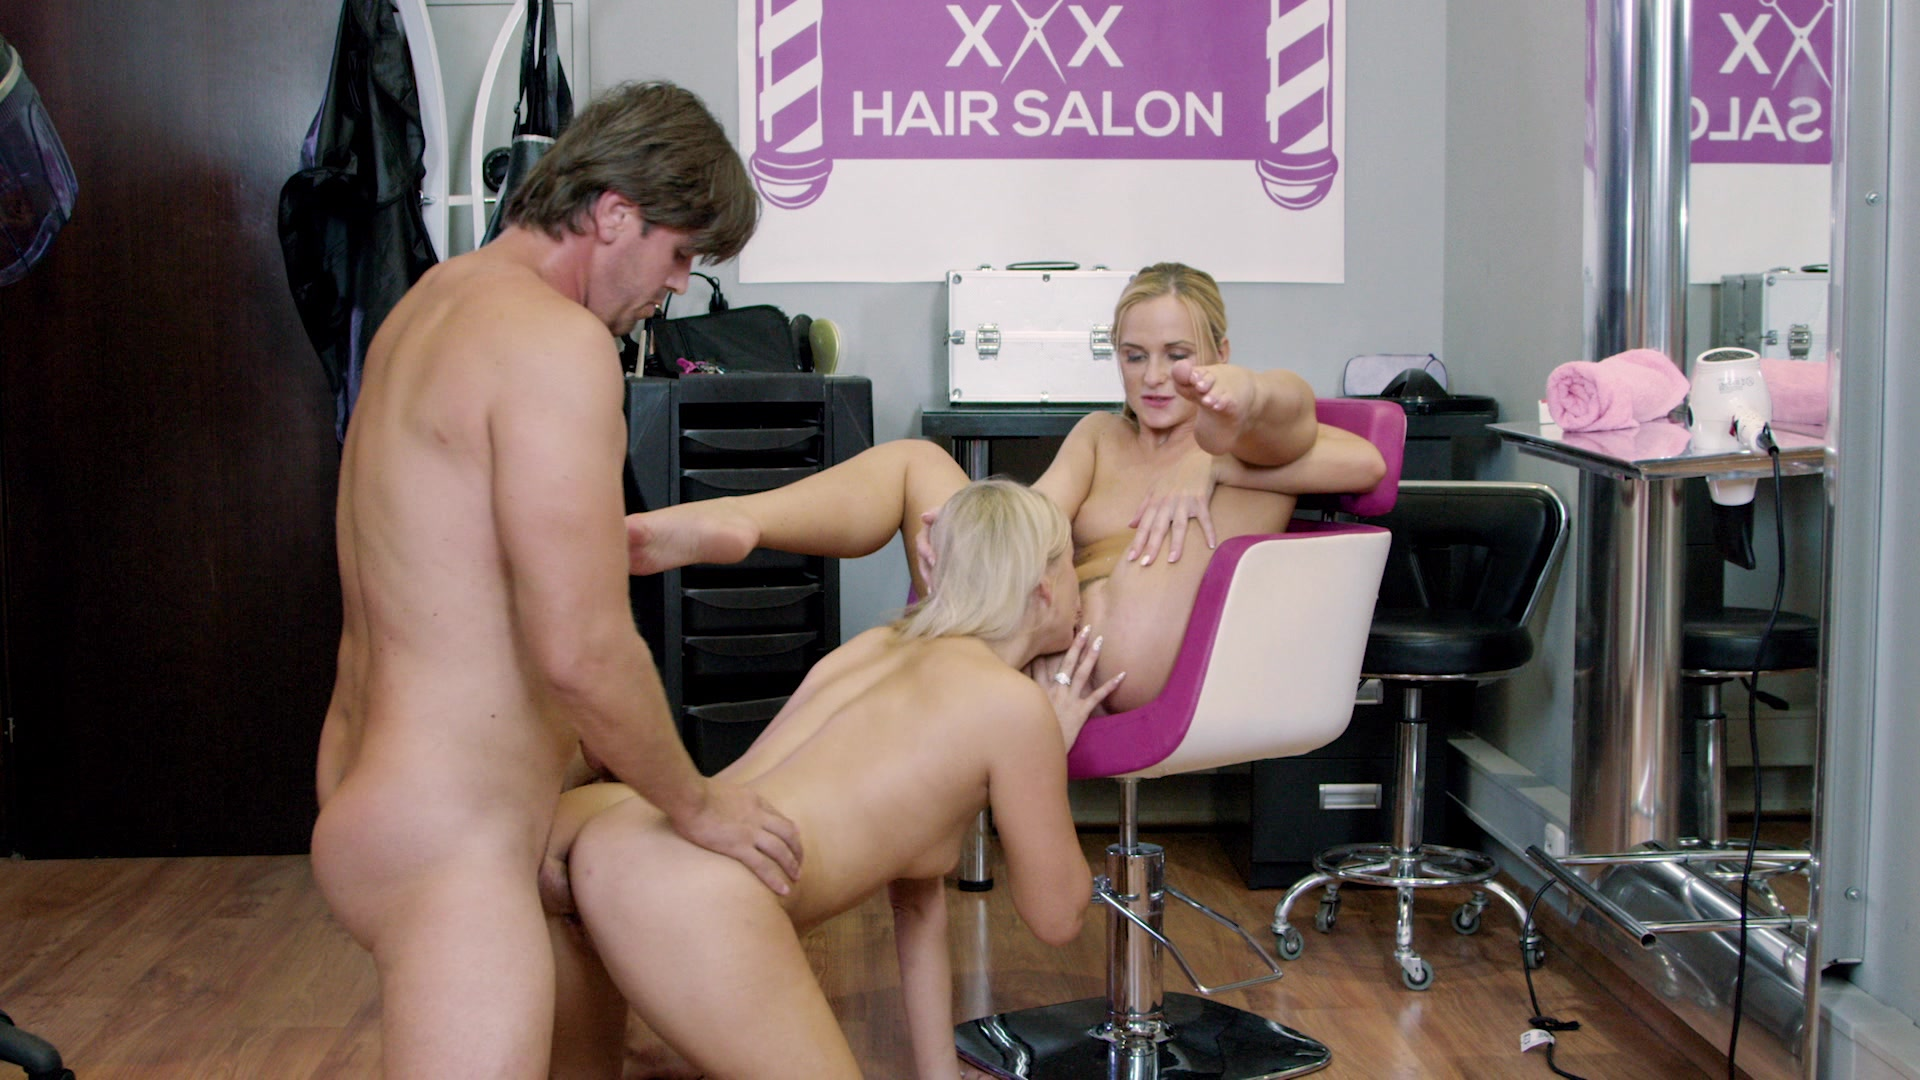 Video Porno Salon Xxx Hair Salon Videos On Demand Adult Dvd Empire